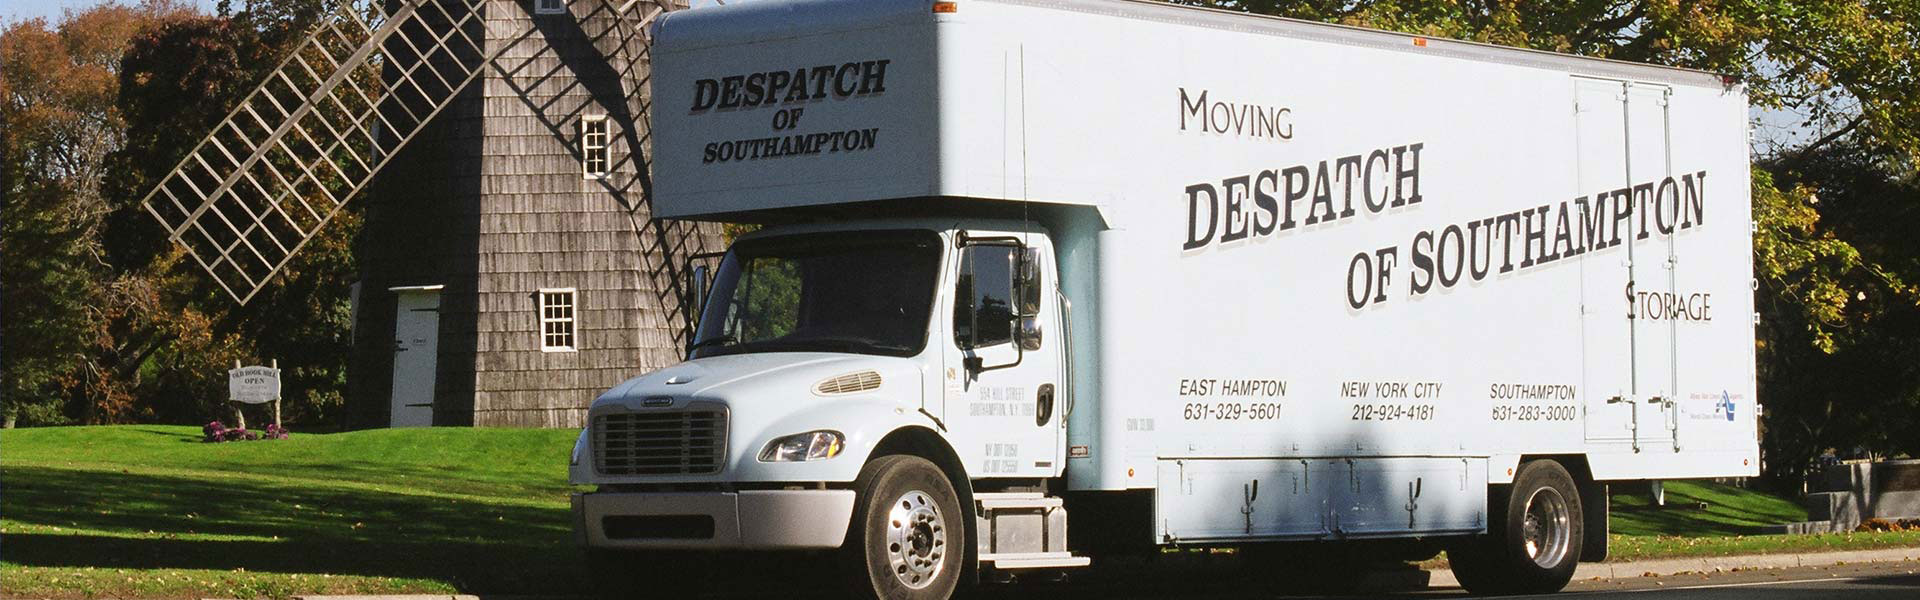 Local Household Goods Moving Services